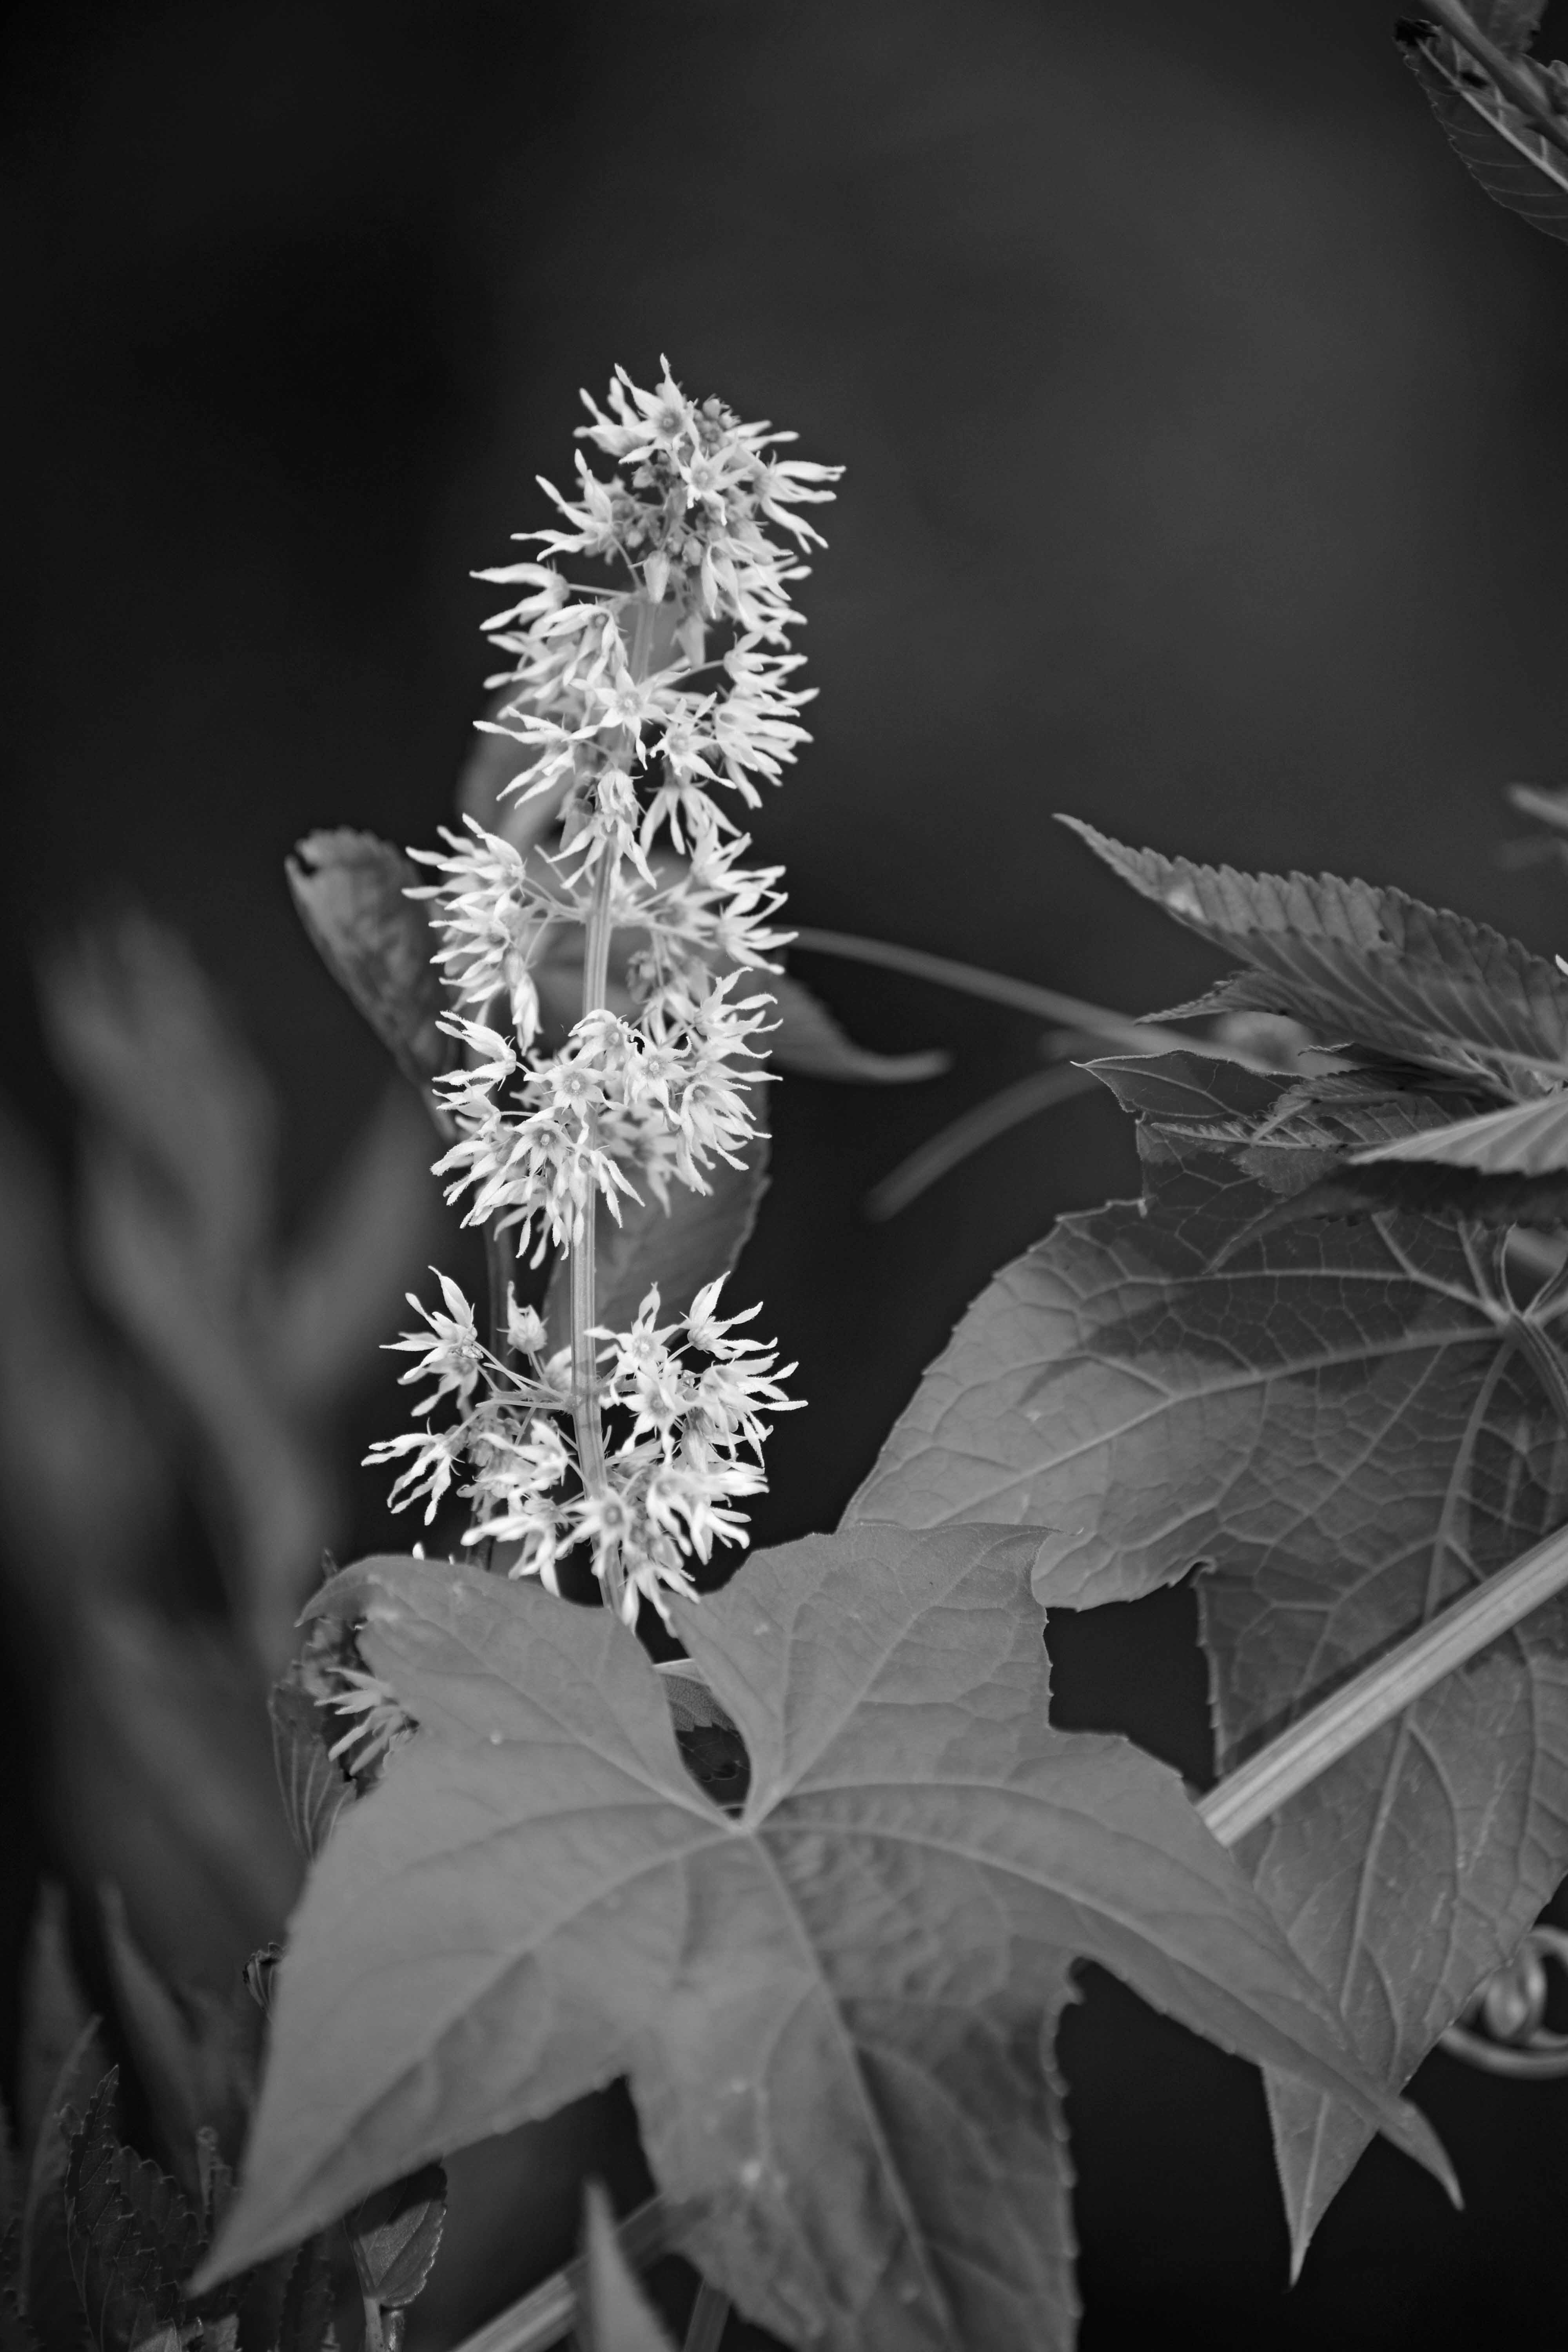 Greyscale Photography of Clustered Flowers